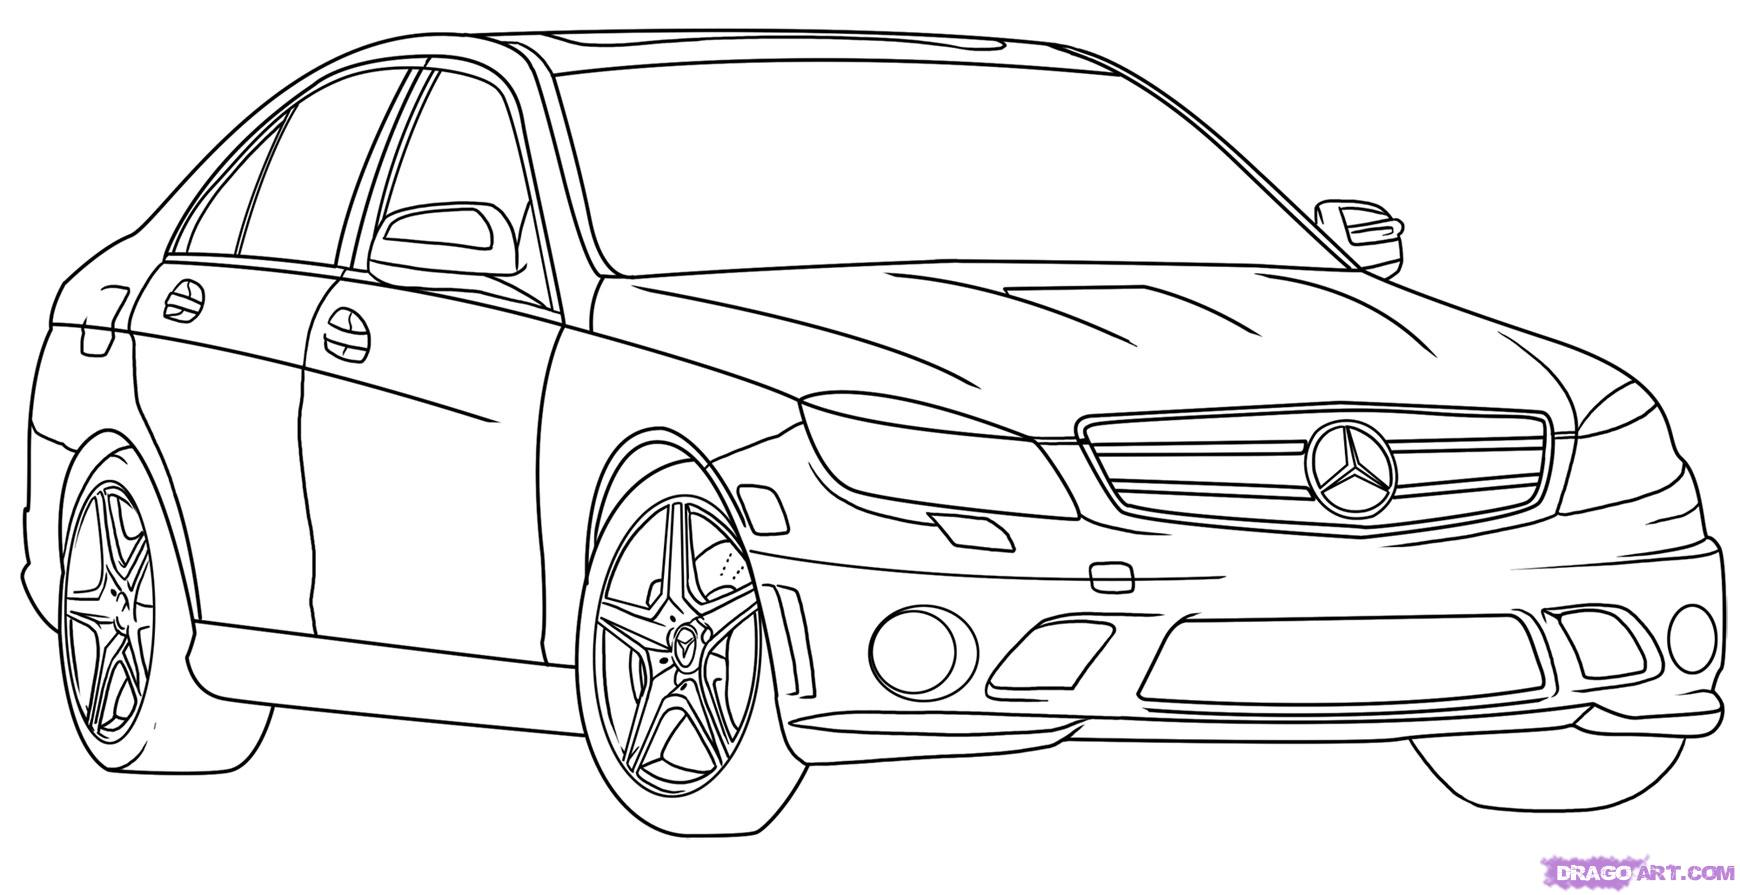 How to Draw a Mercedes-Benz, Step by Step, Cars, Draw Cars Online ...